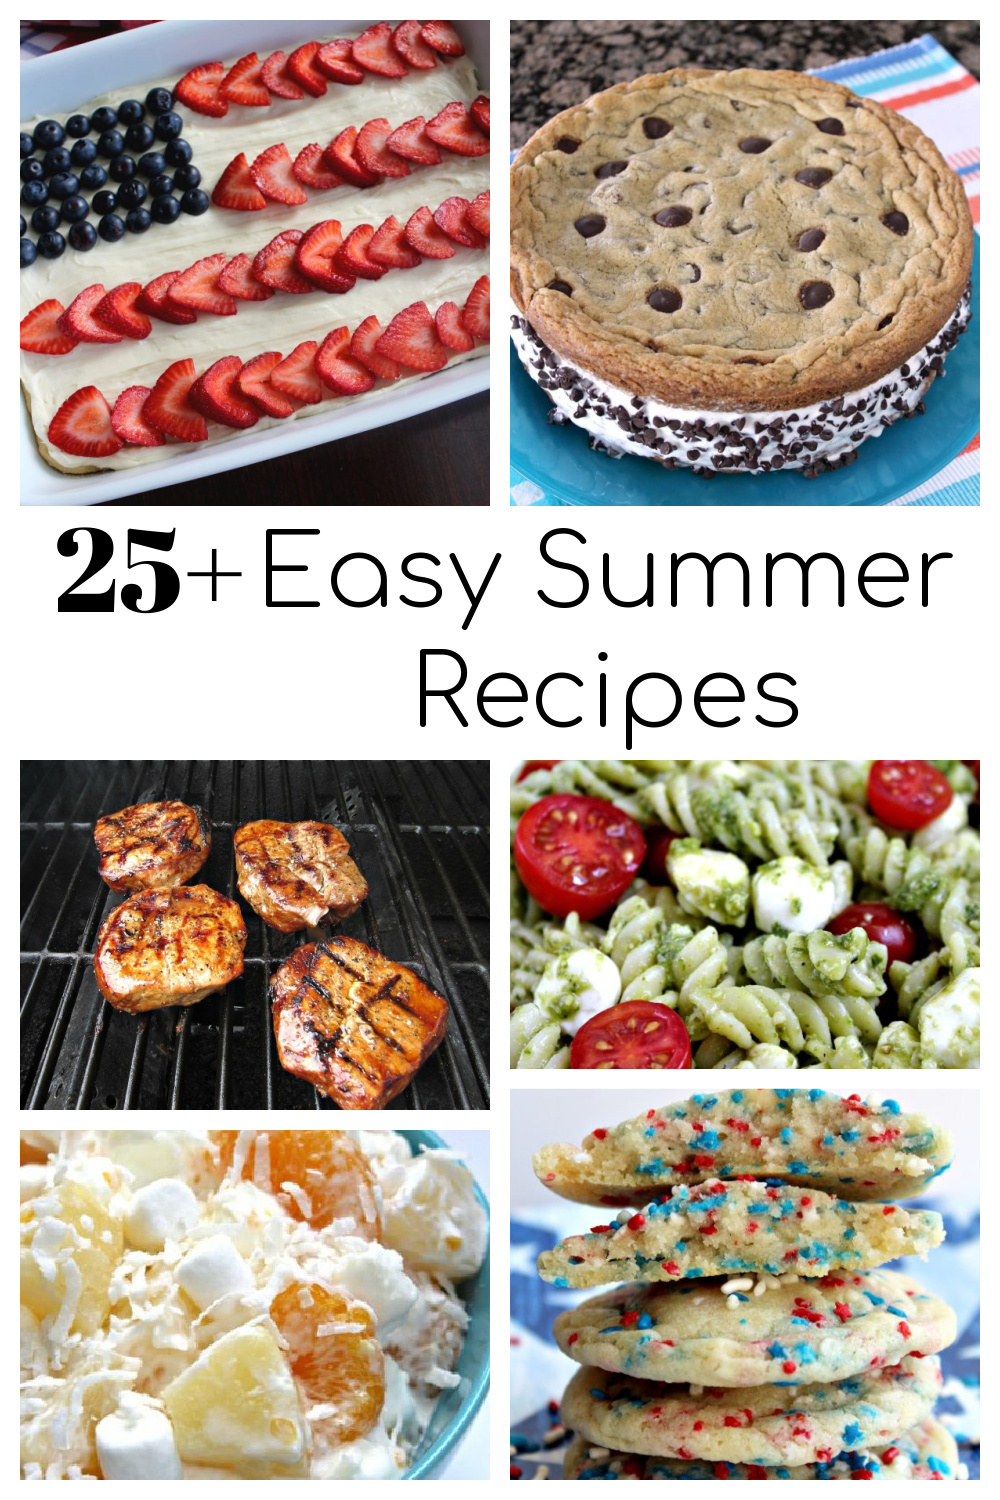 Collage of easy summer recipes